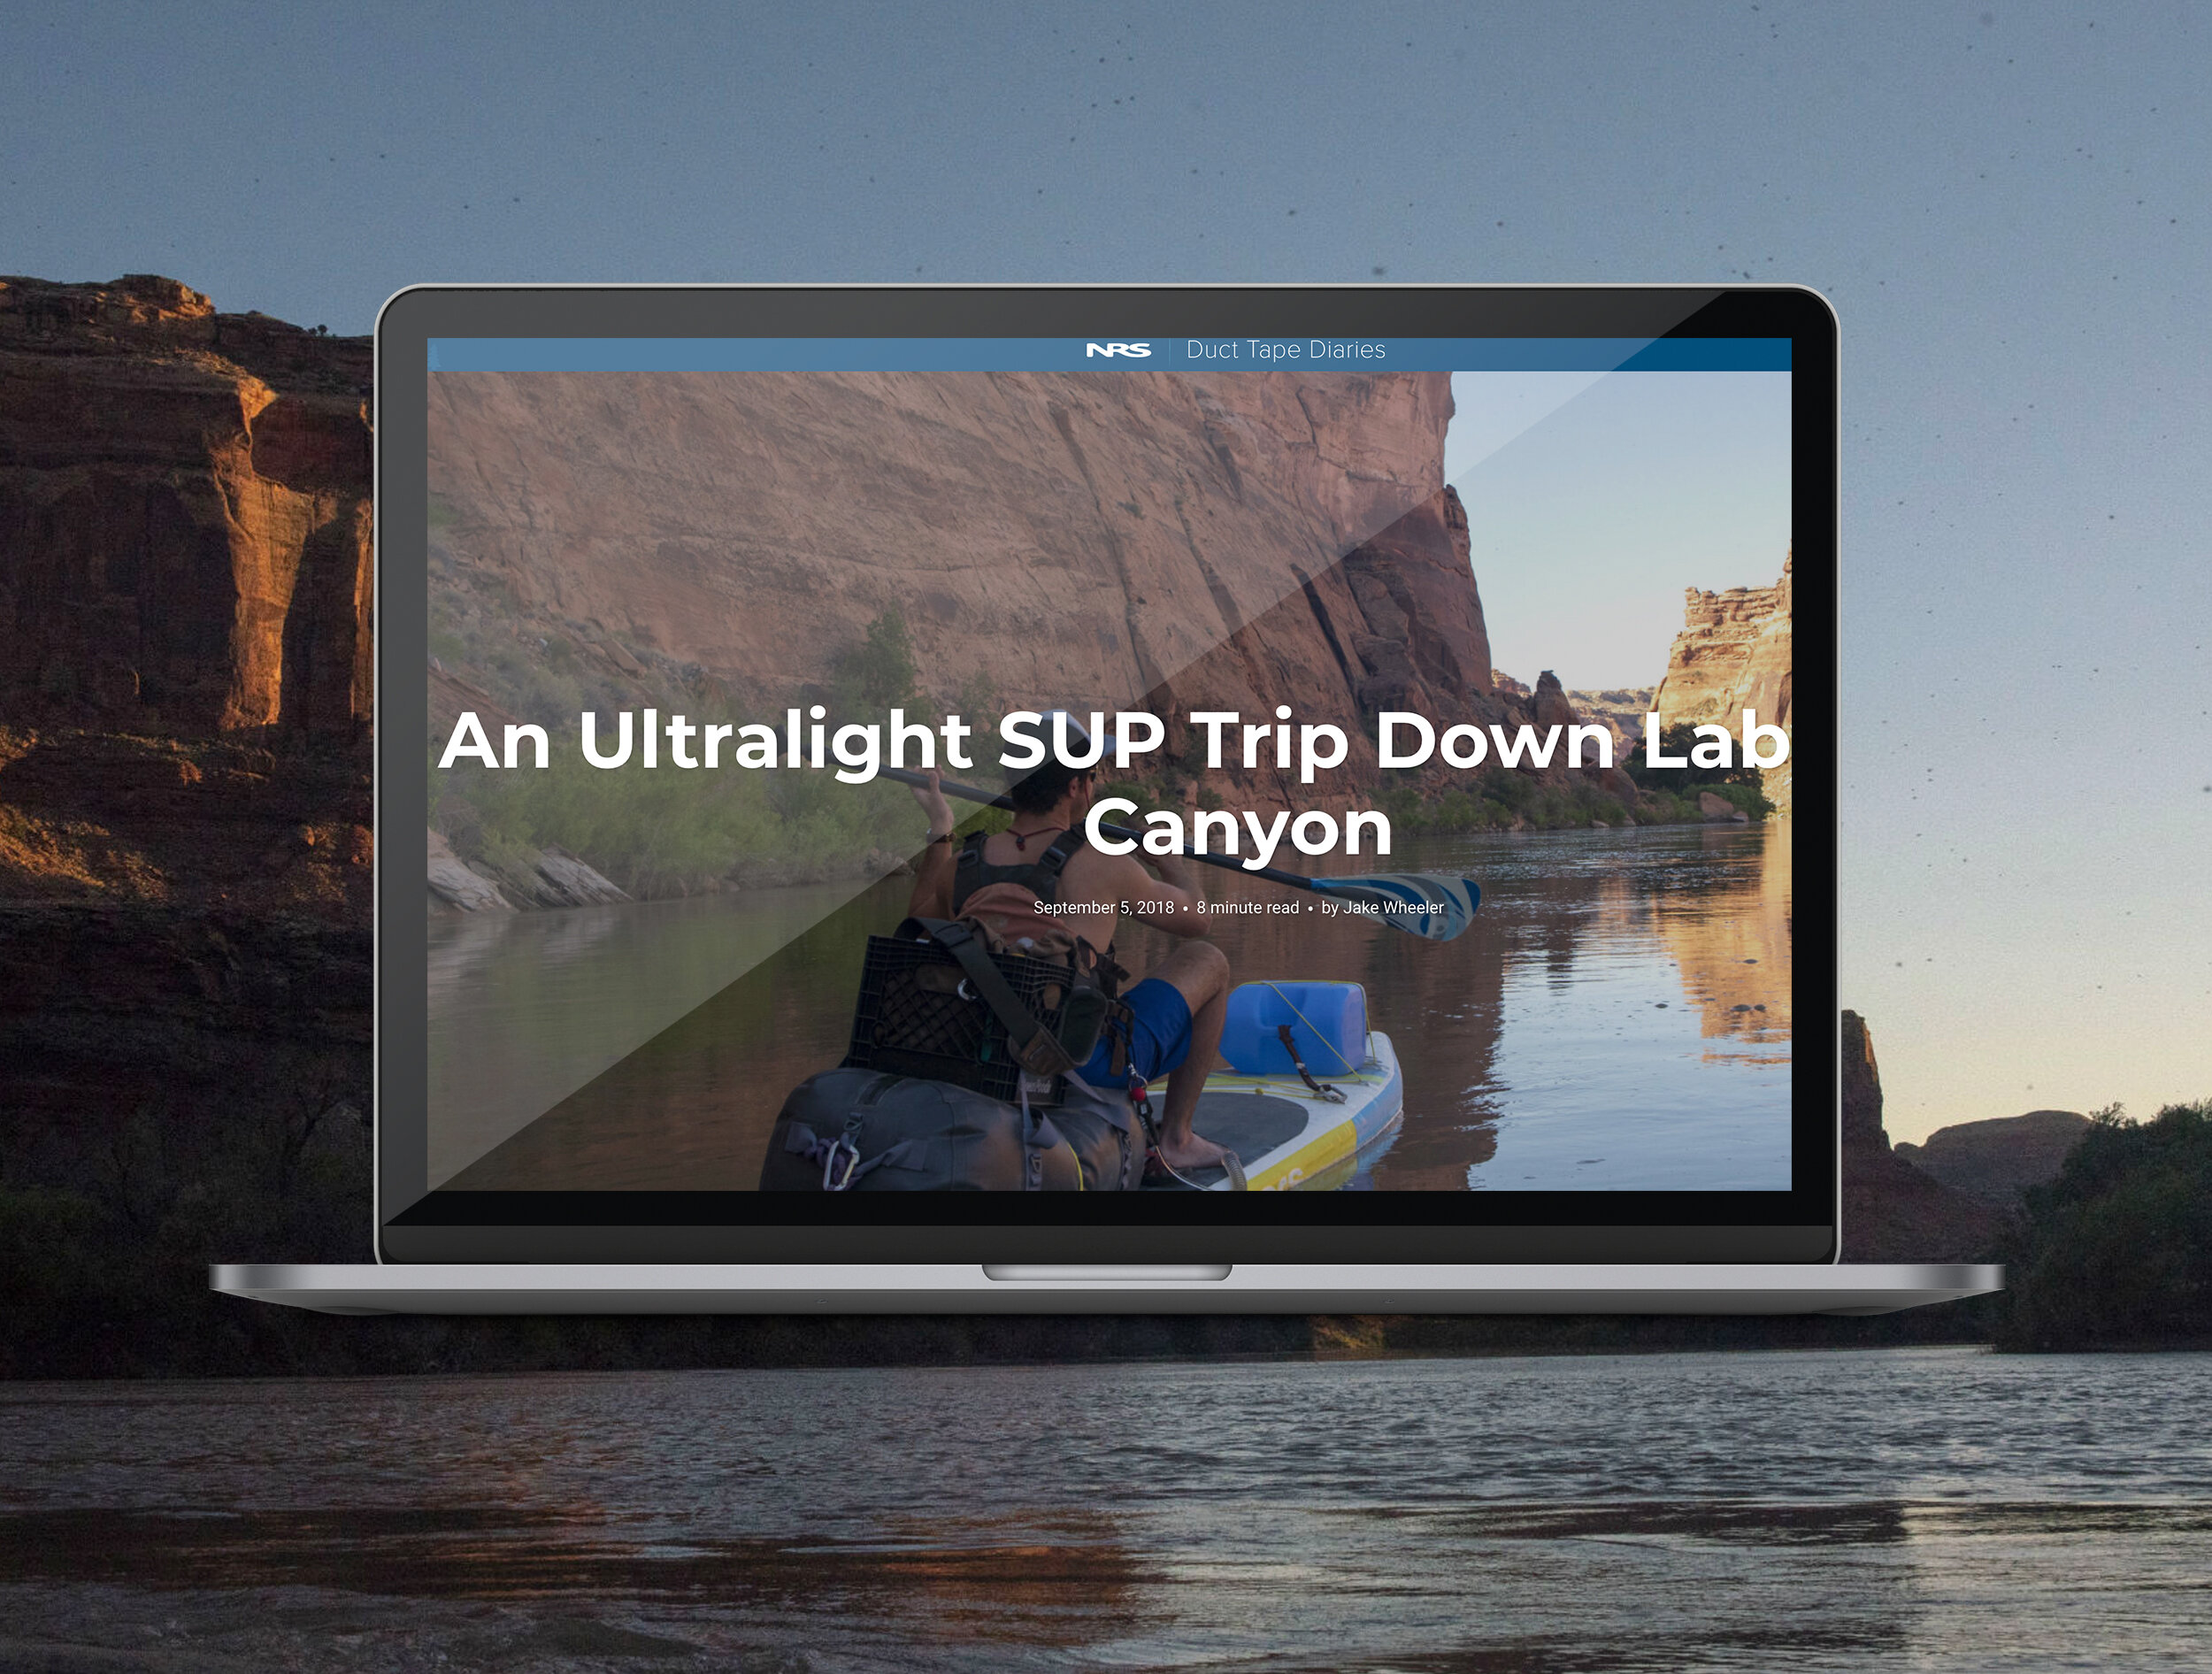 NRS - Photography and blog content creation highlighting a SUP trip down the Green River in Utah.